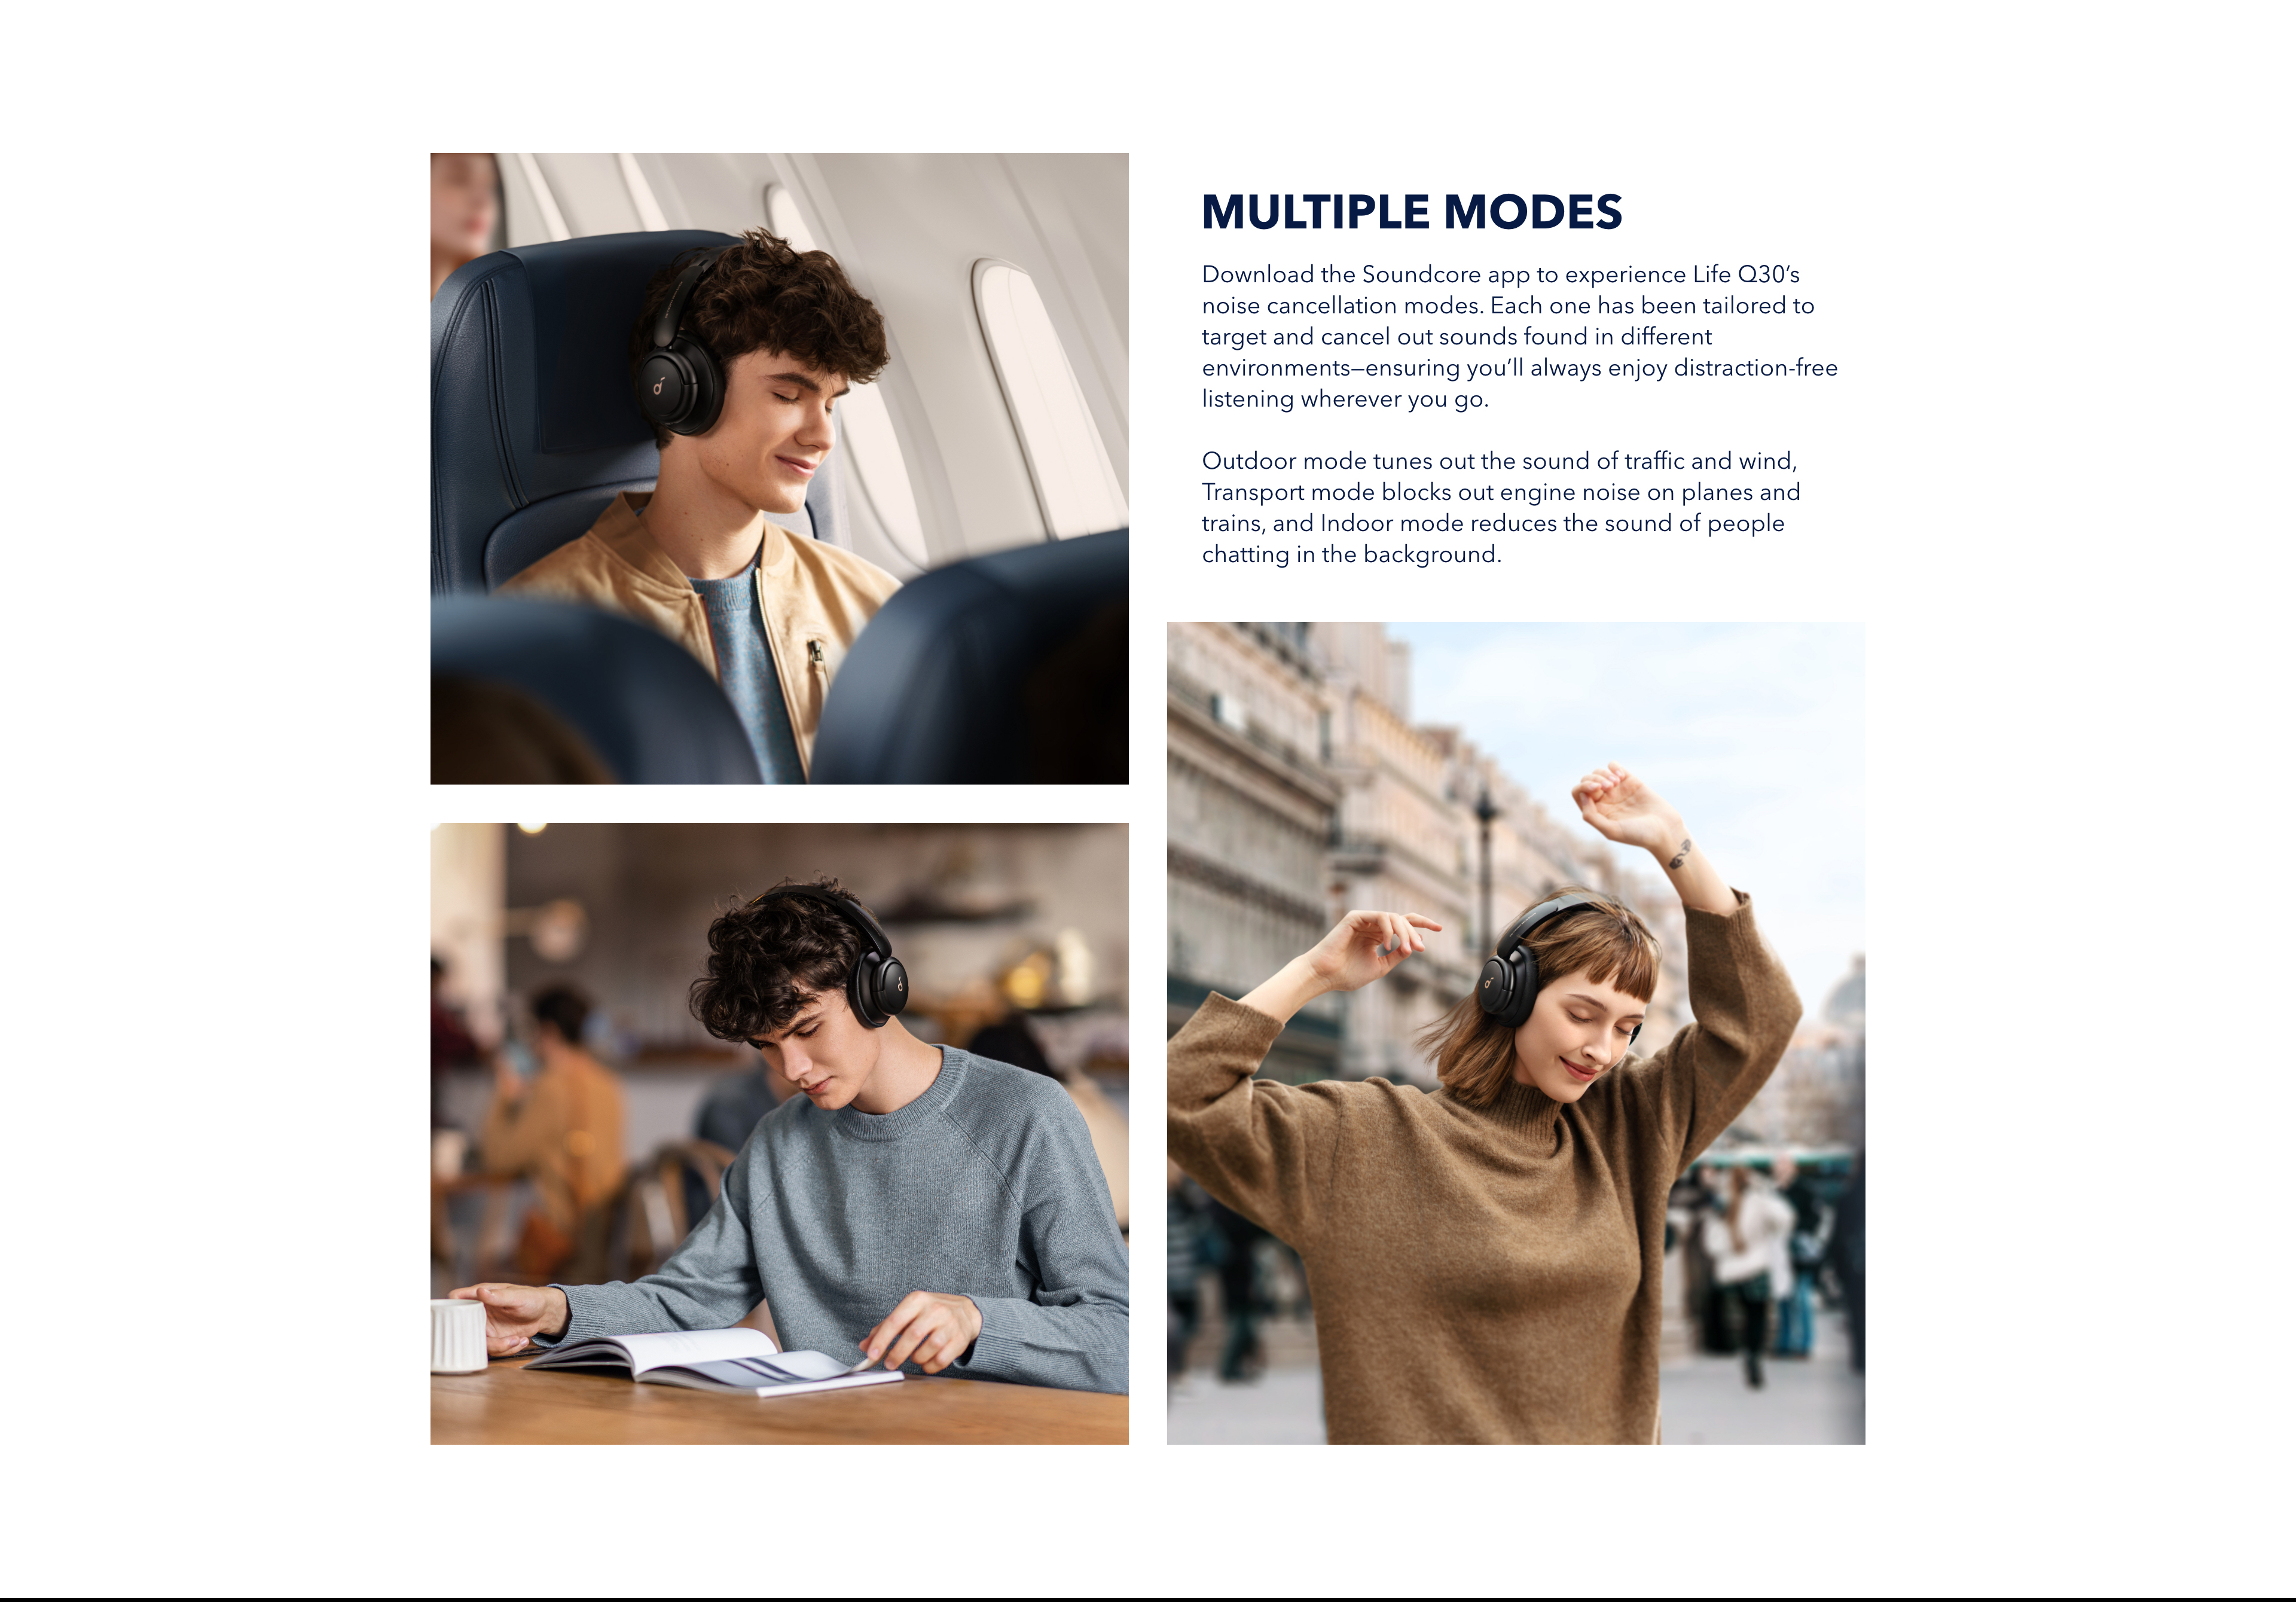 With Multiple Modes